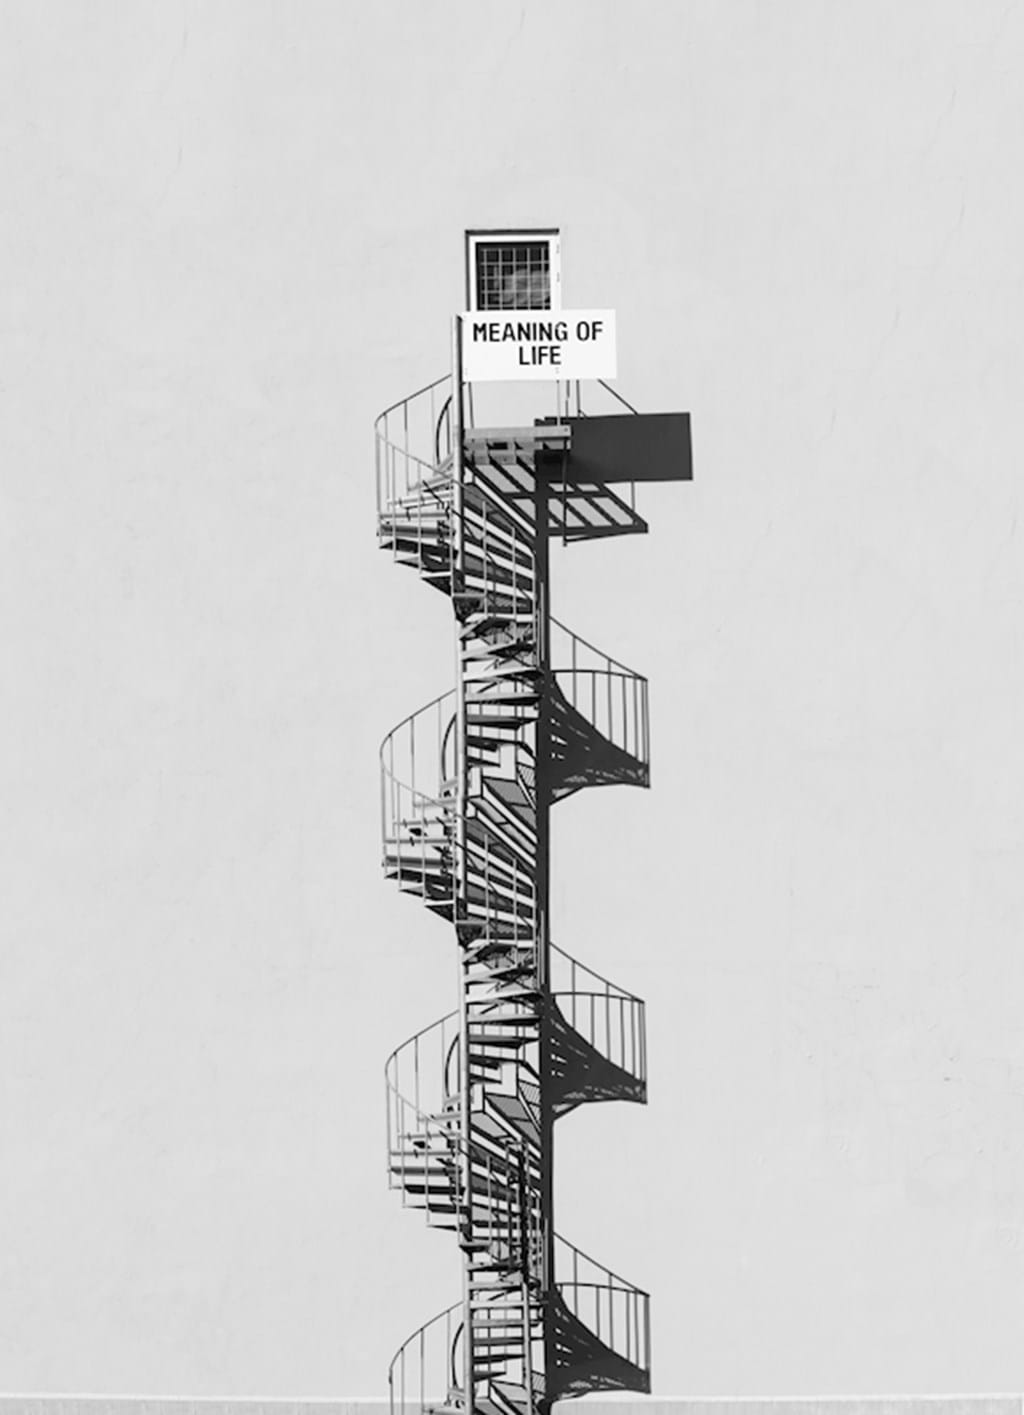 Poster: Meaning of life - Architecture & Design